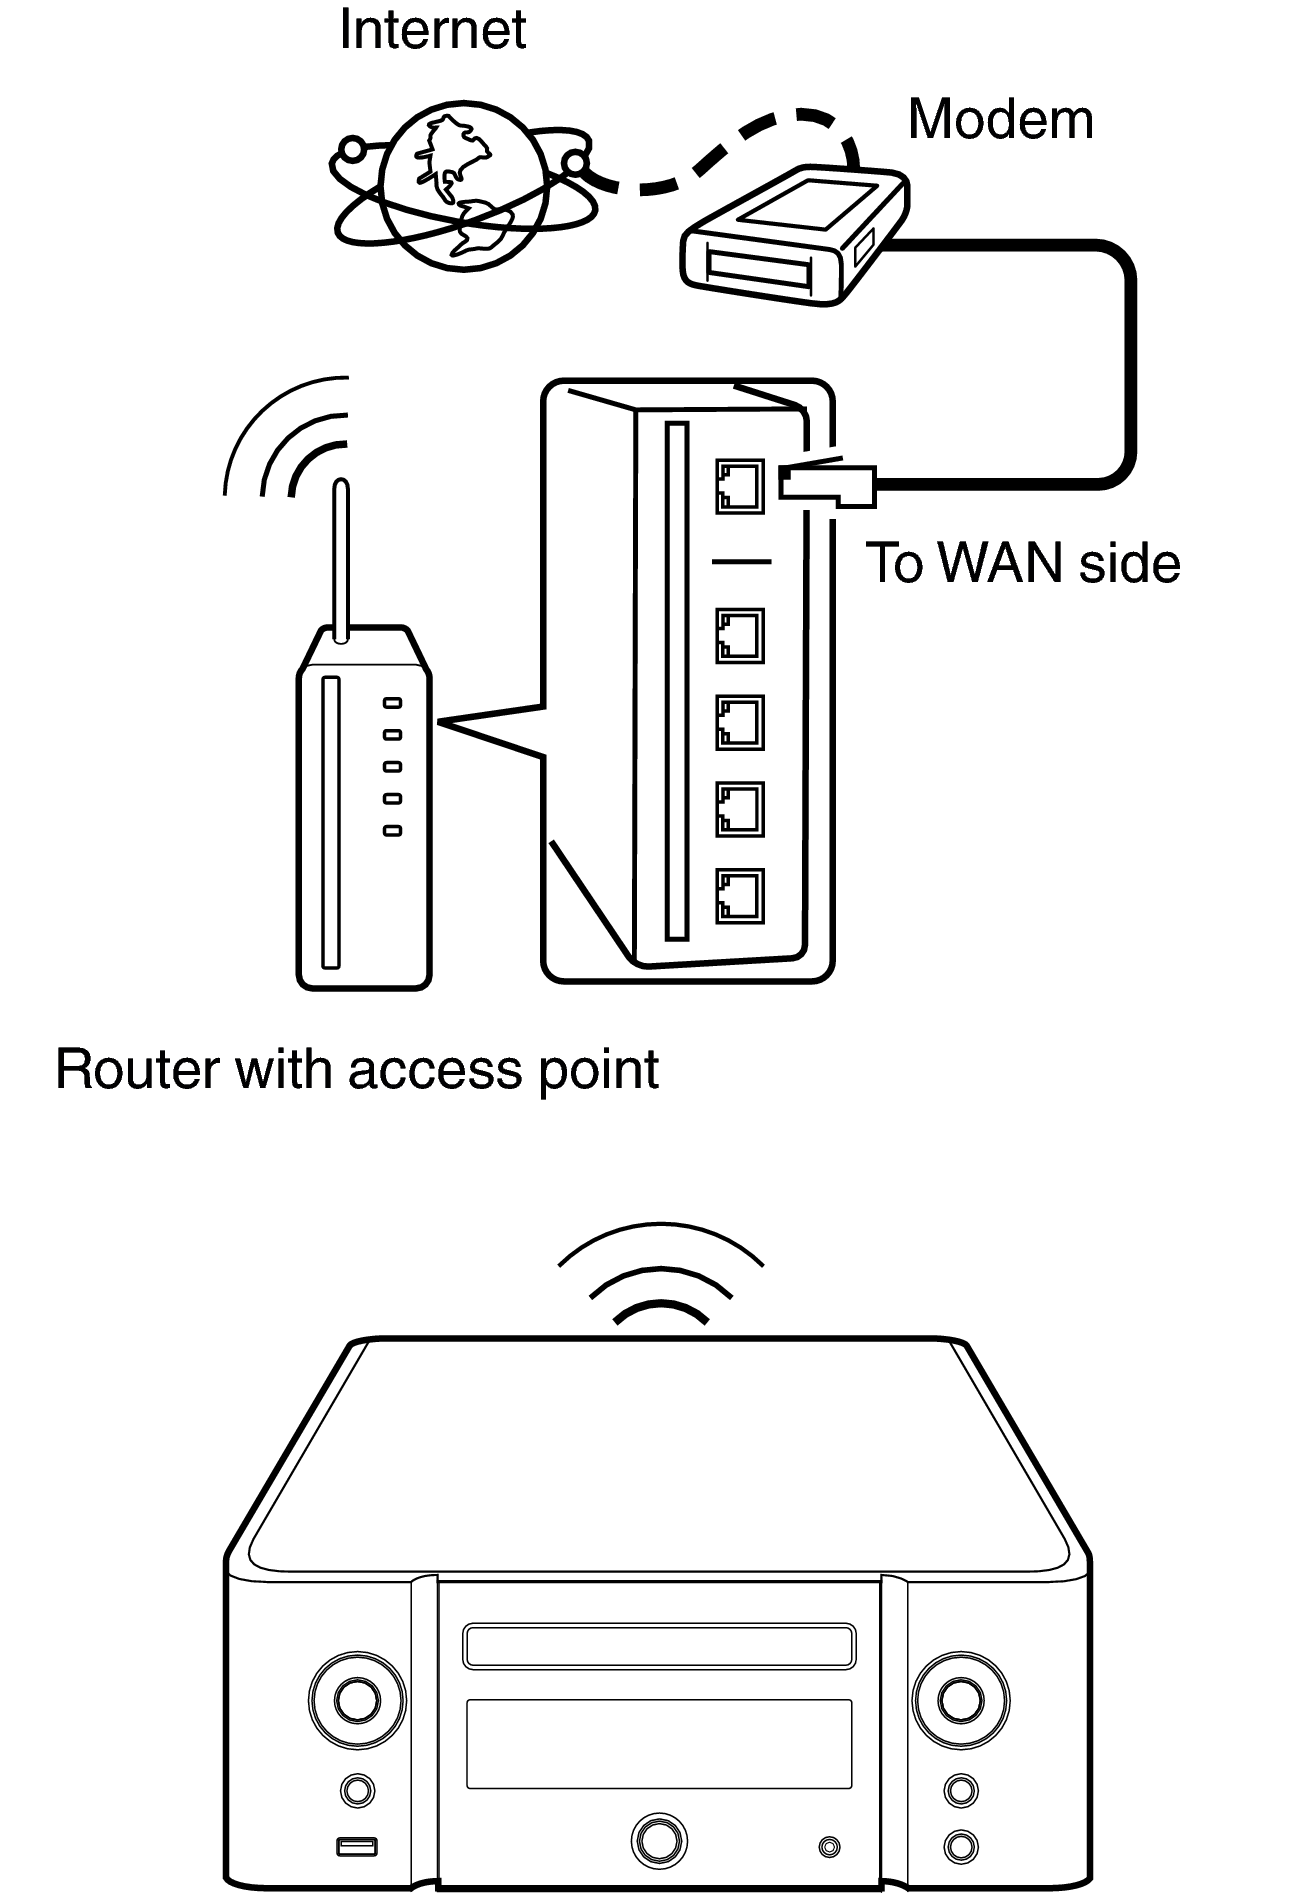 Wireless Lan M Cr611 Diagram Conne Mcr611